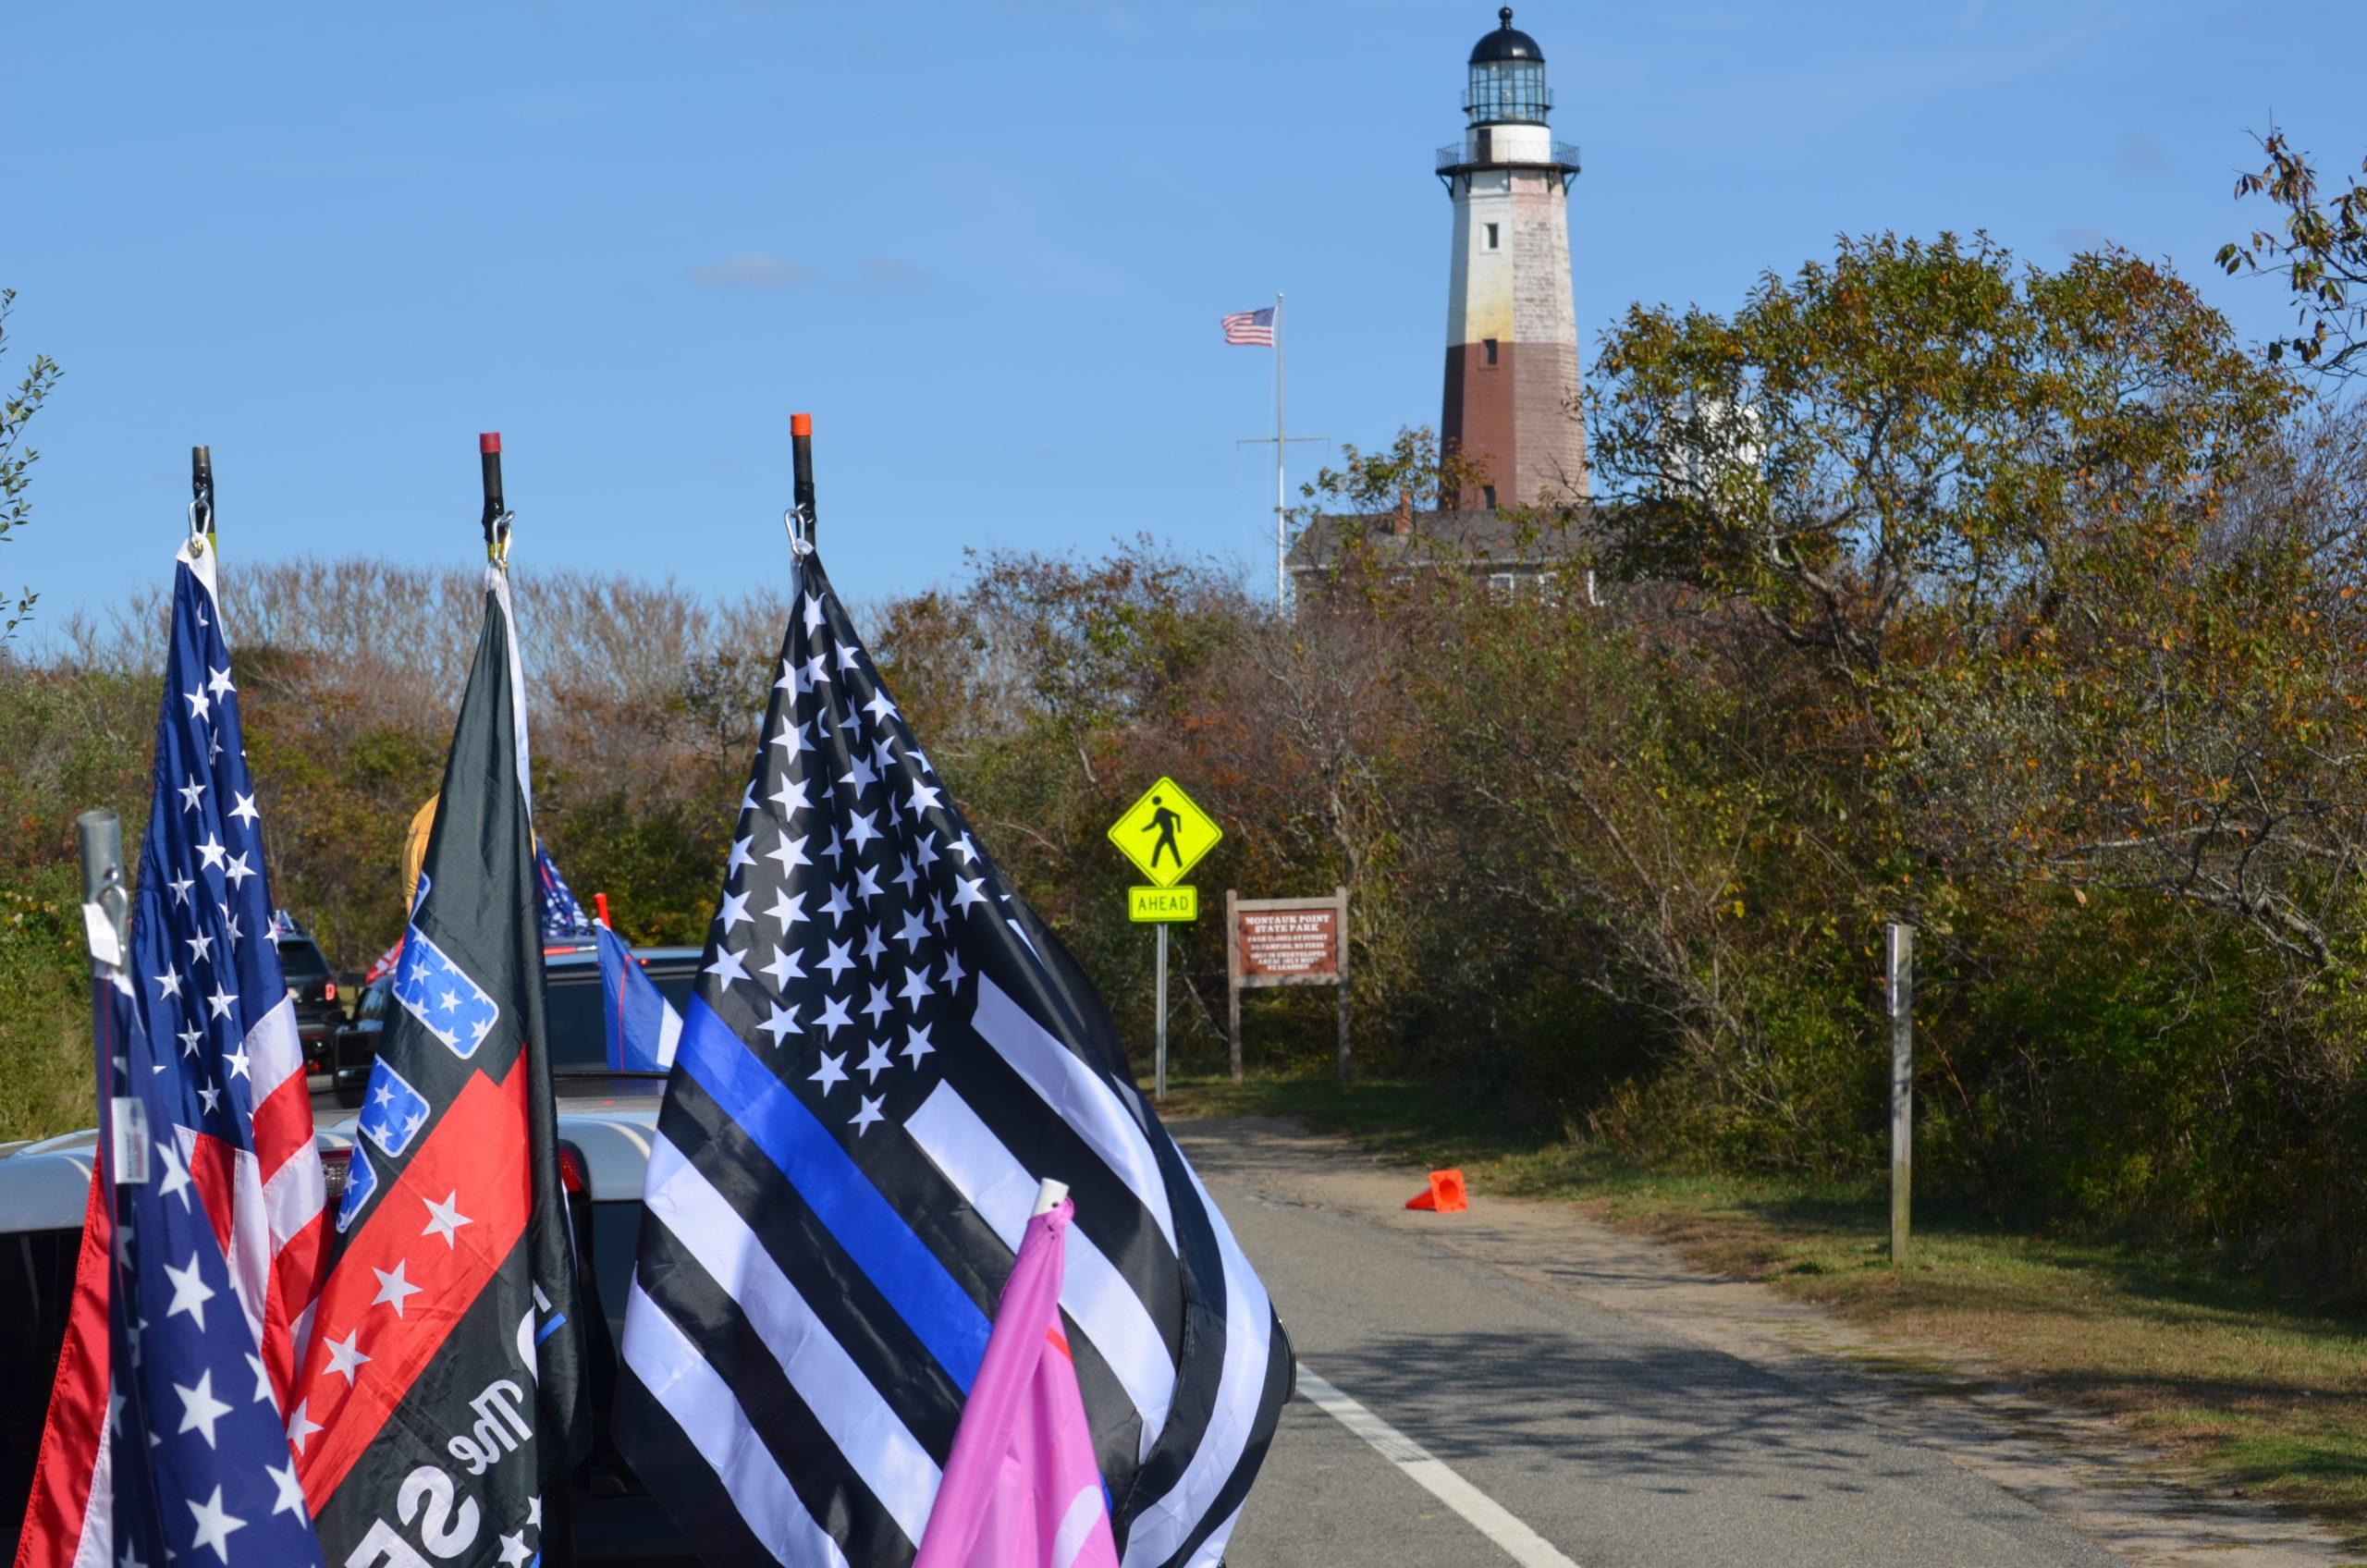 The parade passes the Montauk Lighthouse on October 18.